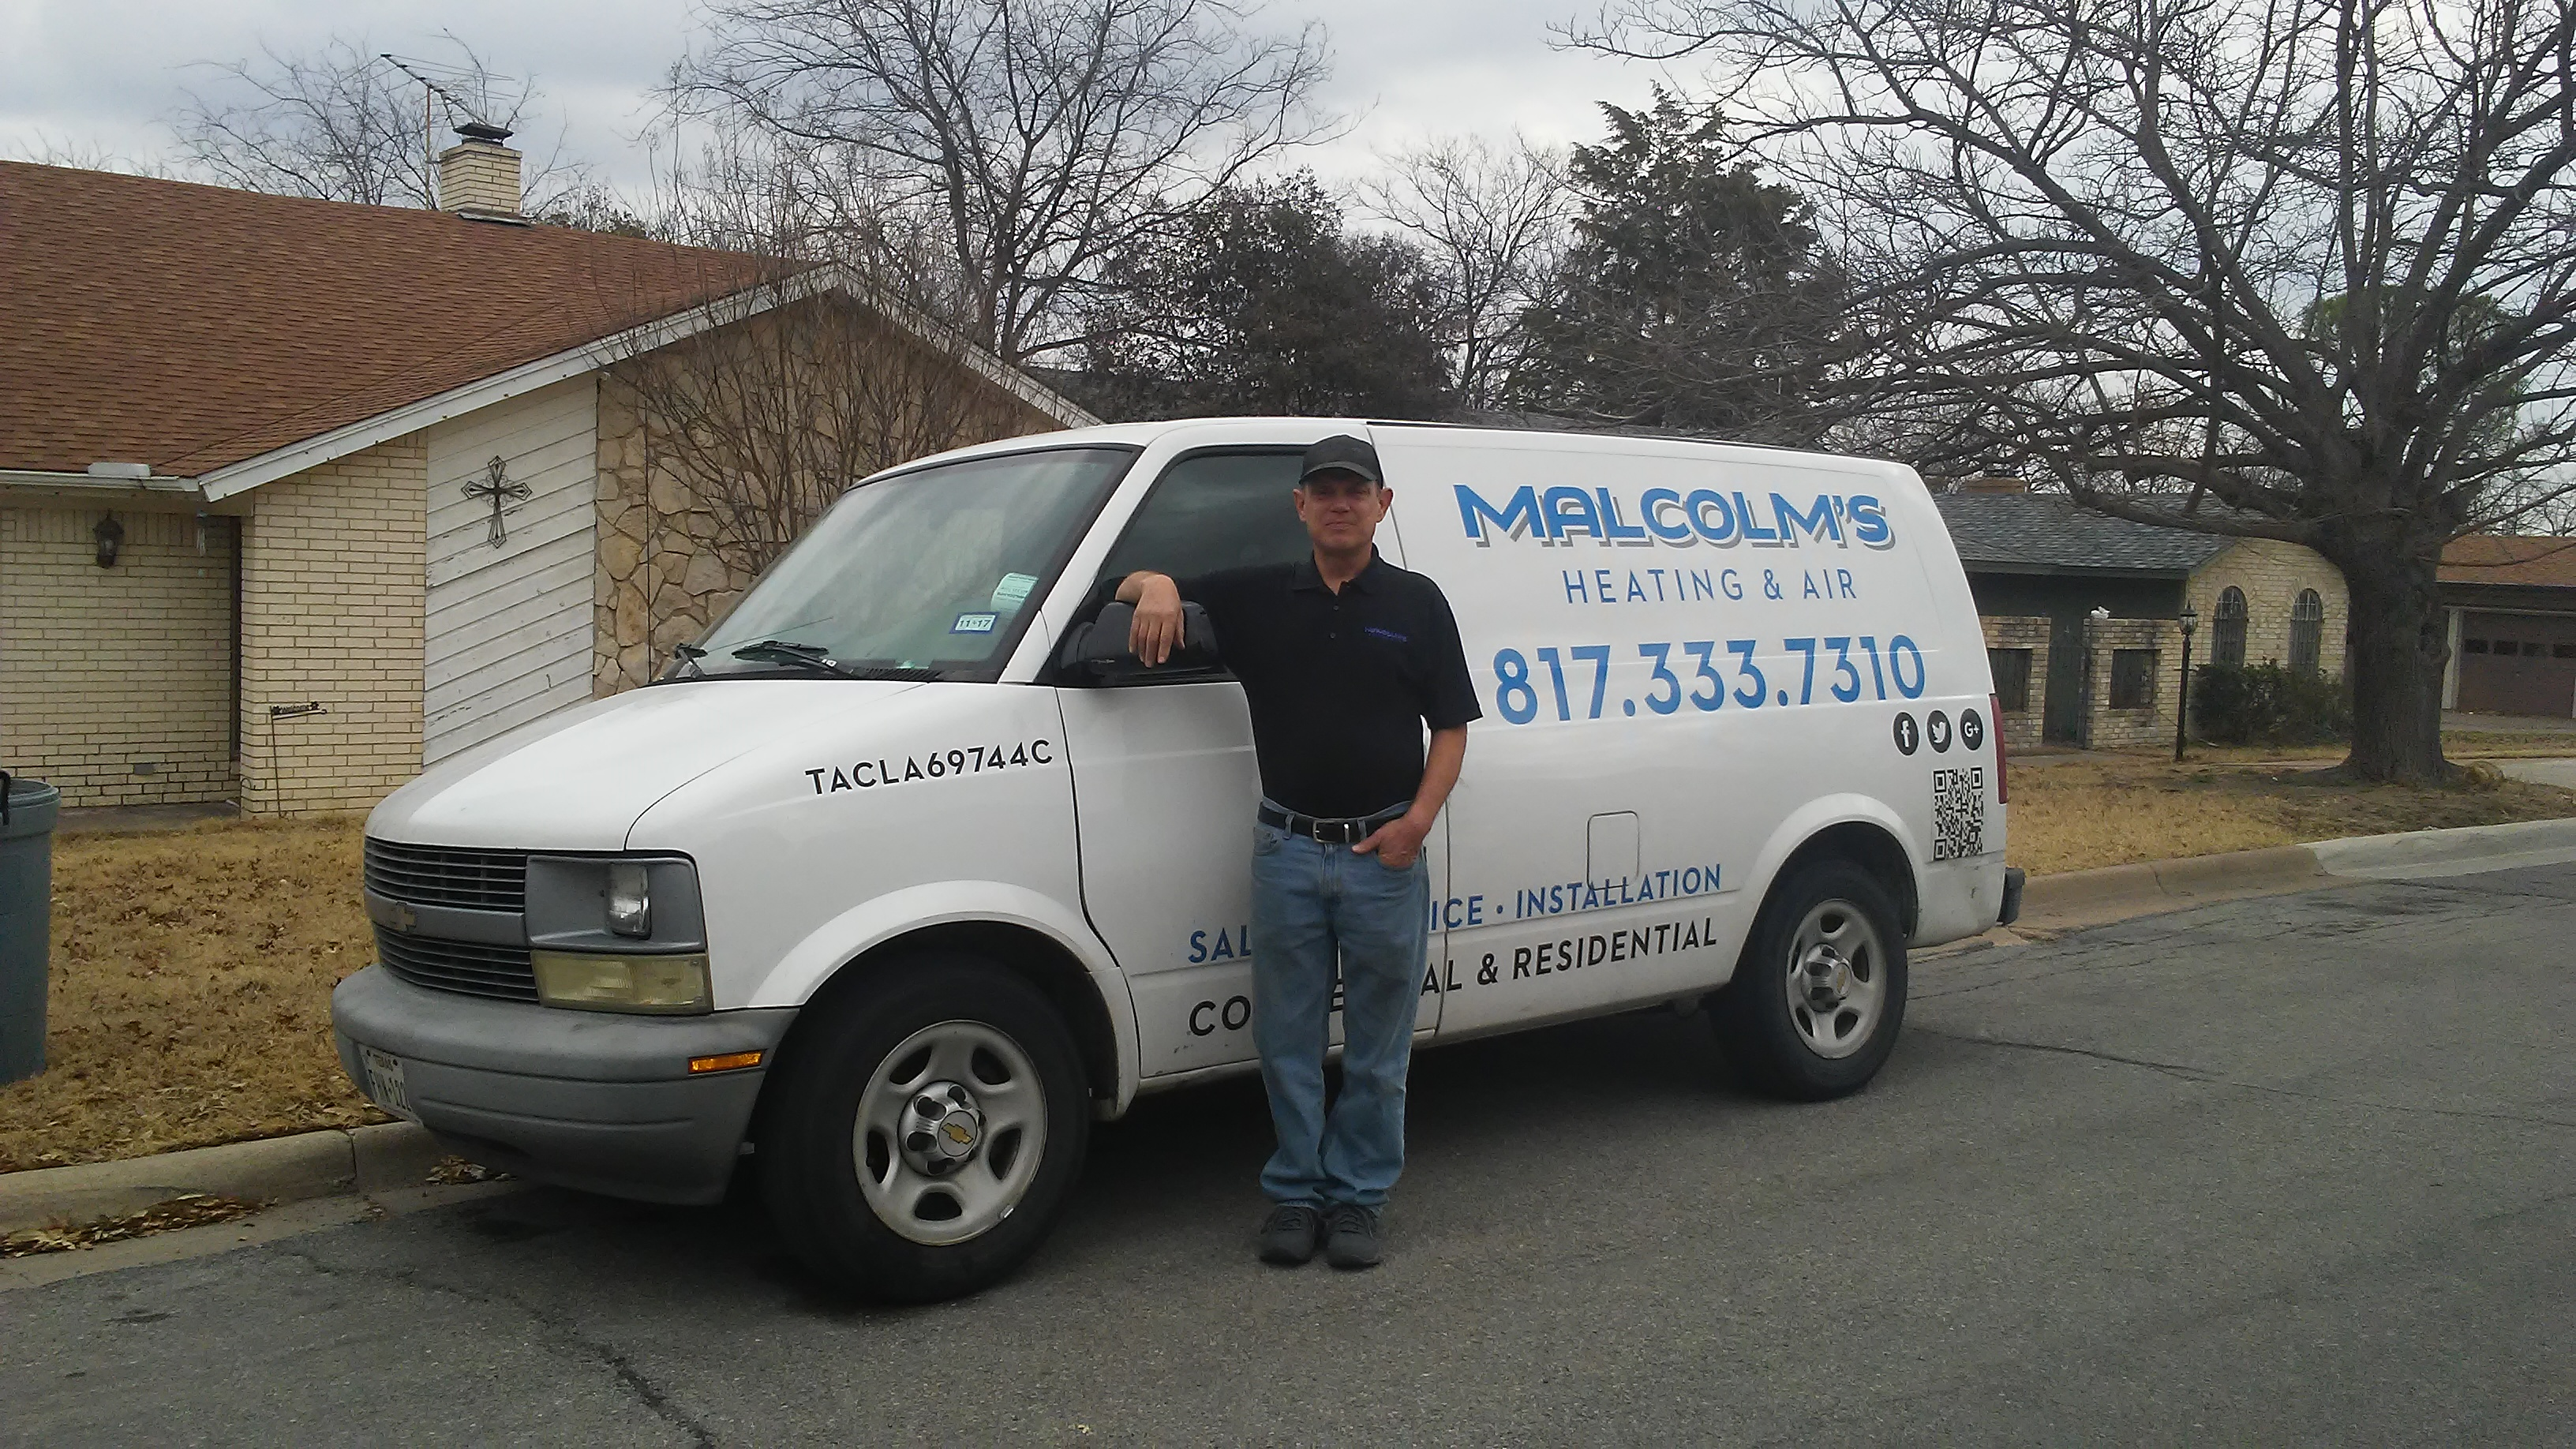 Malcolms Heating Amp Air Appliance Repair Service North